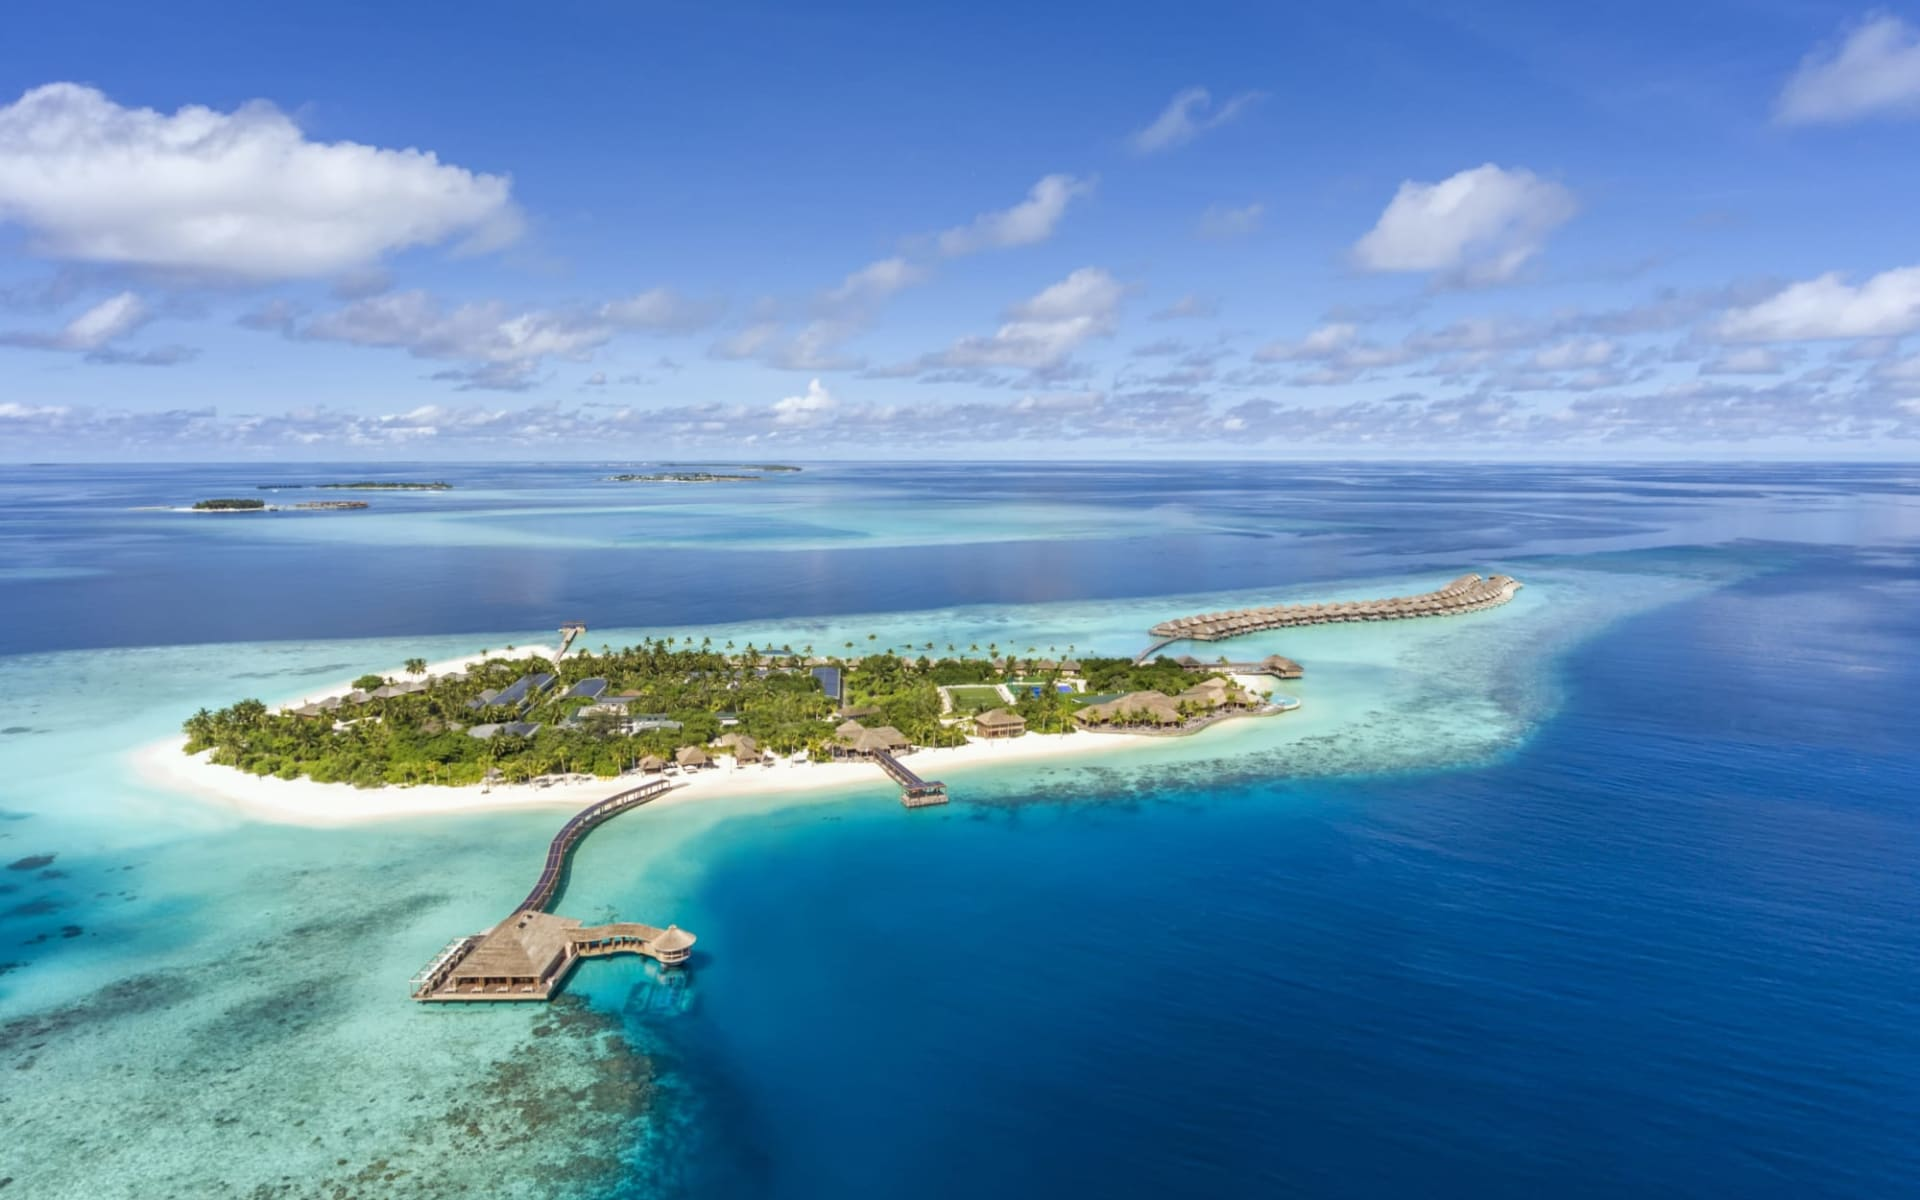 Hurawalhi Island Resort in Lhaviyani-Atoll: